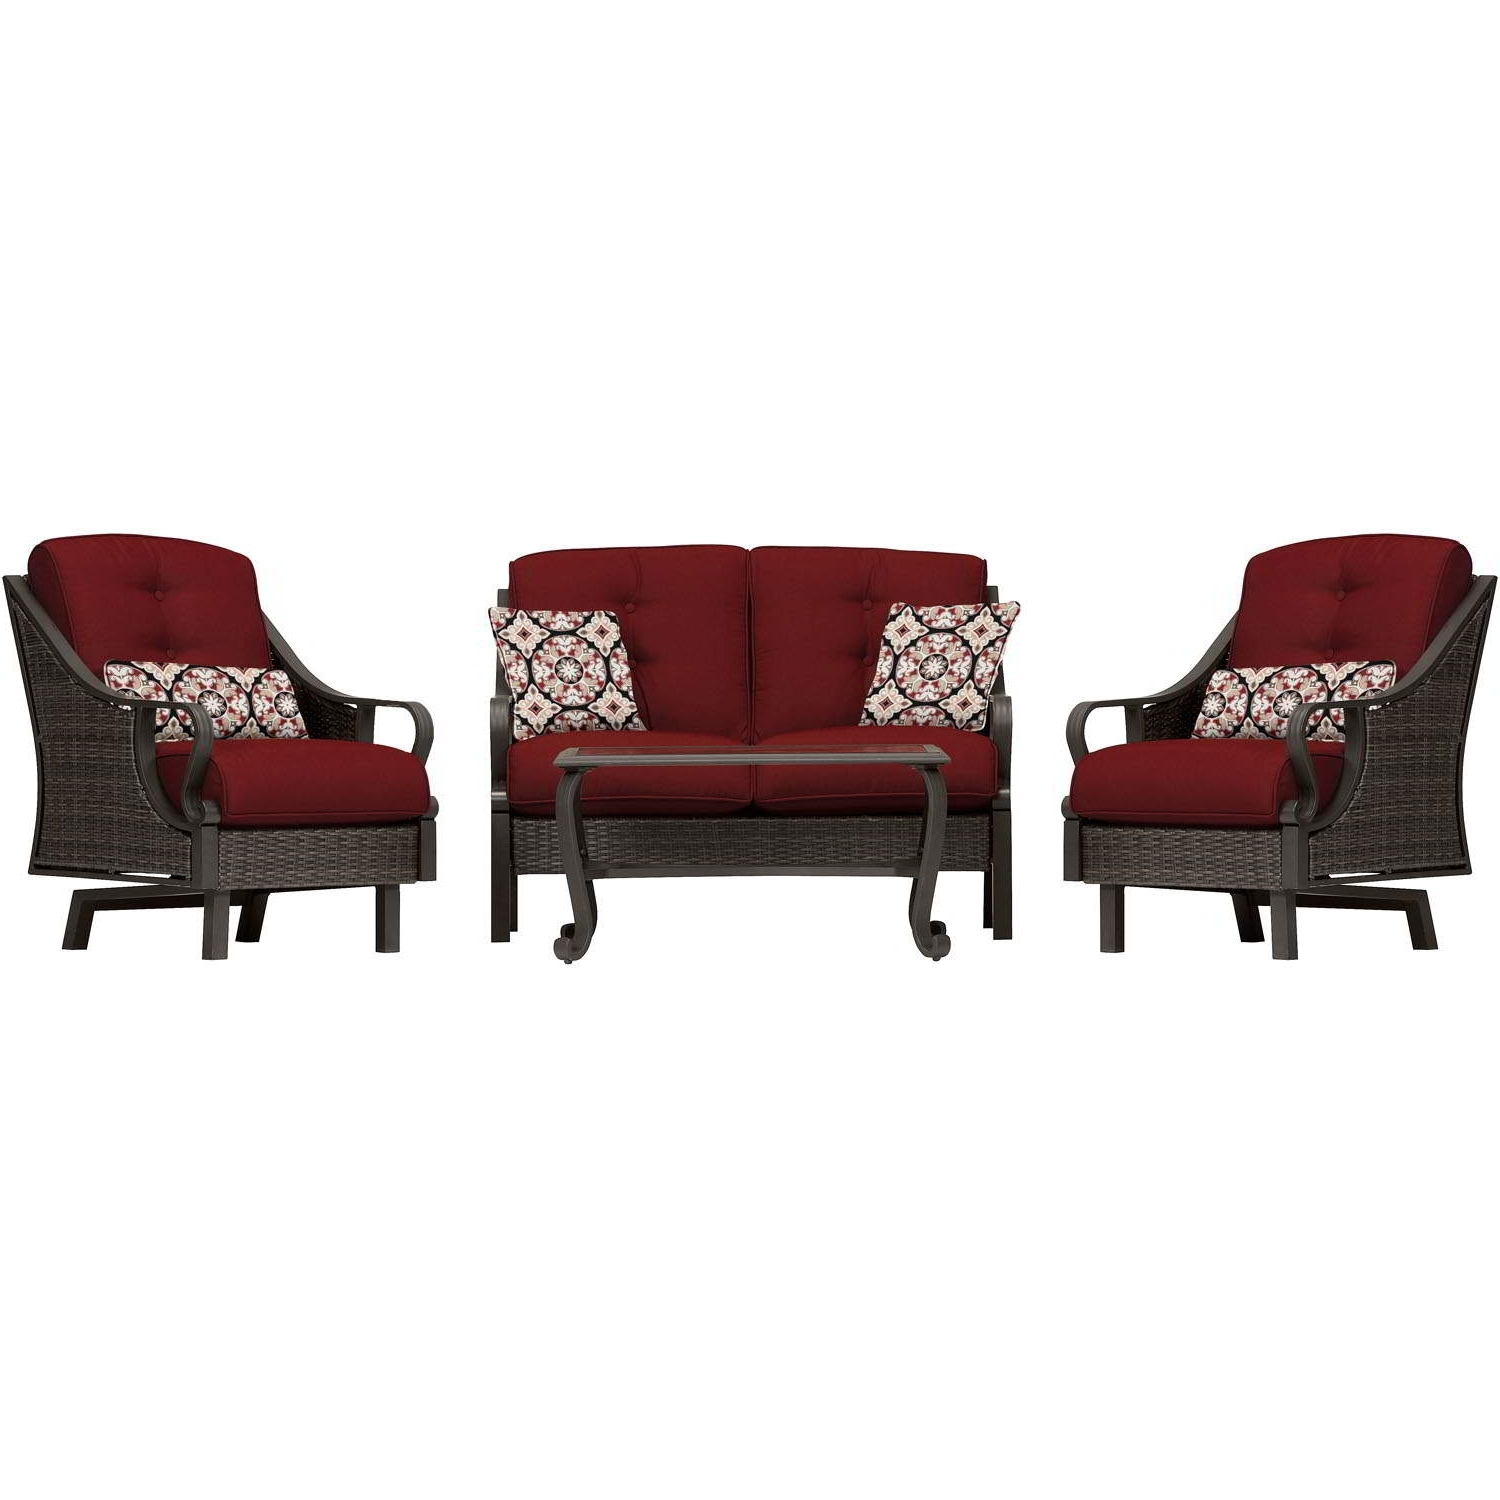 Wicker 4pc Patio Conversation Sets With Navy Cushions With 2018 Ventura 4 Piece Seating Set In Crimson Red – Ventura4pc Red (View 11 of 20)